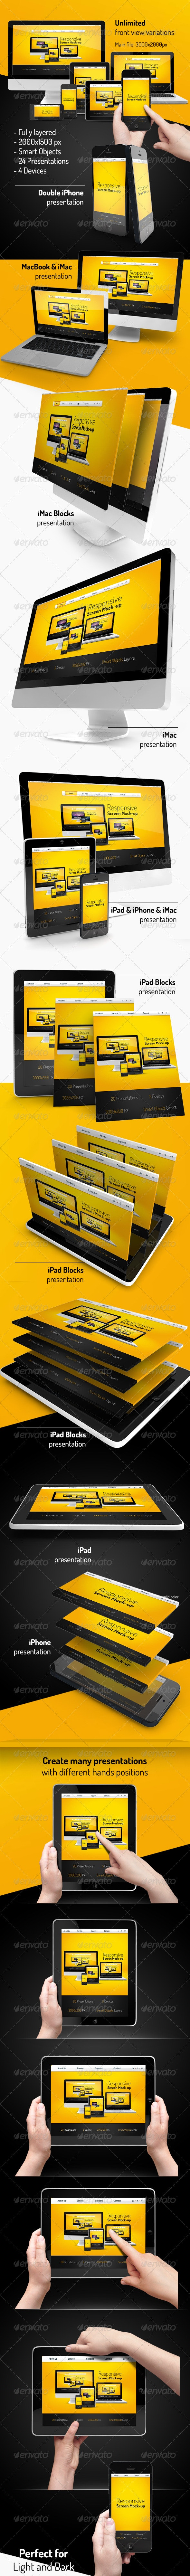 Responsive Screen Mock-up - Displays Product Mock-Ups